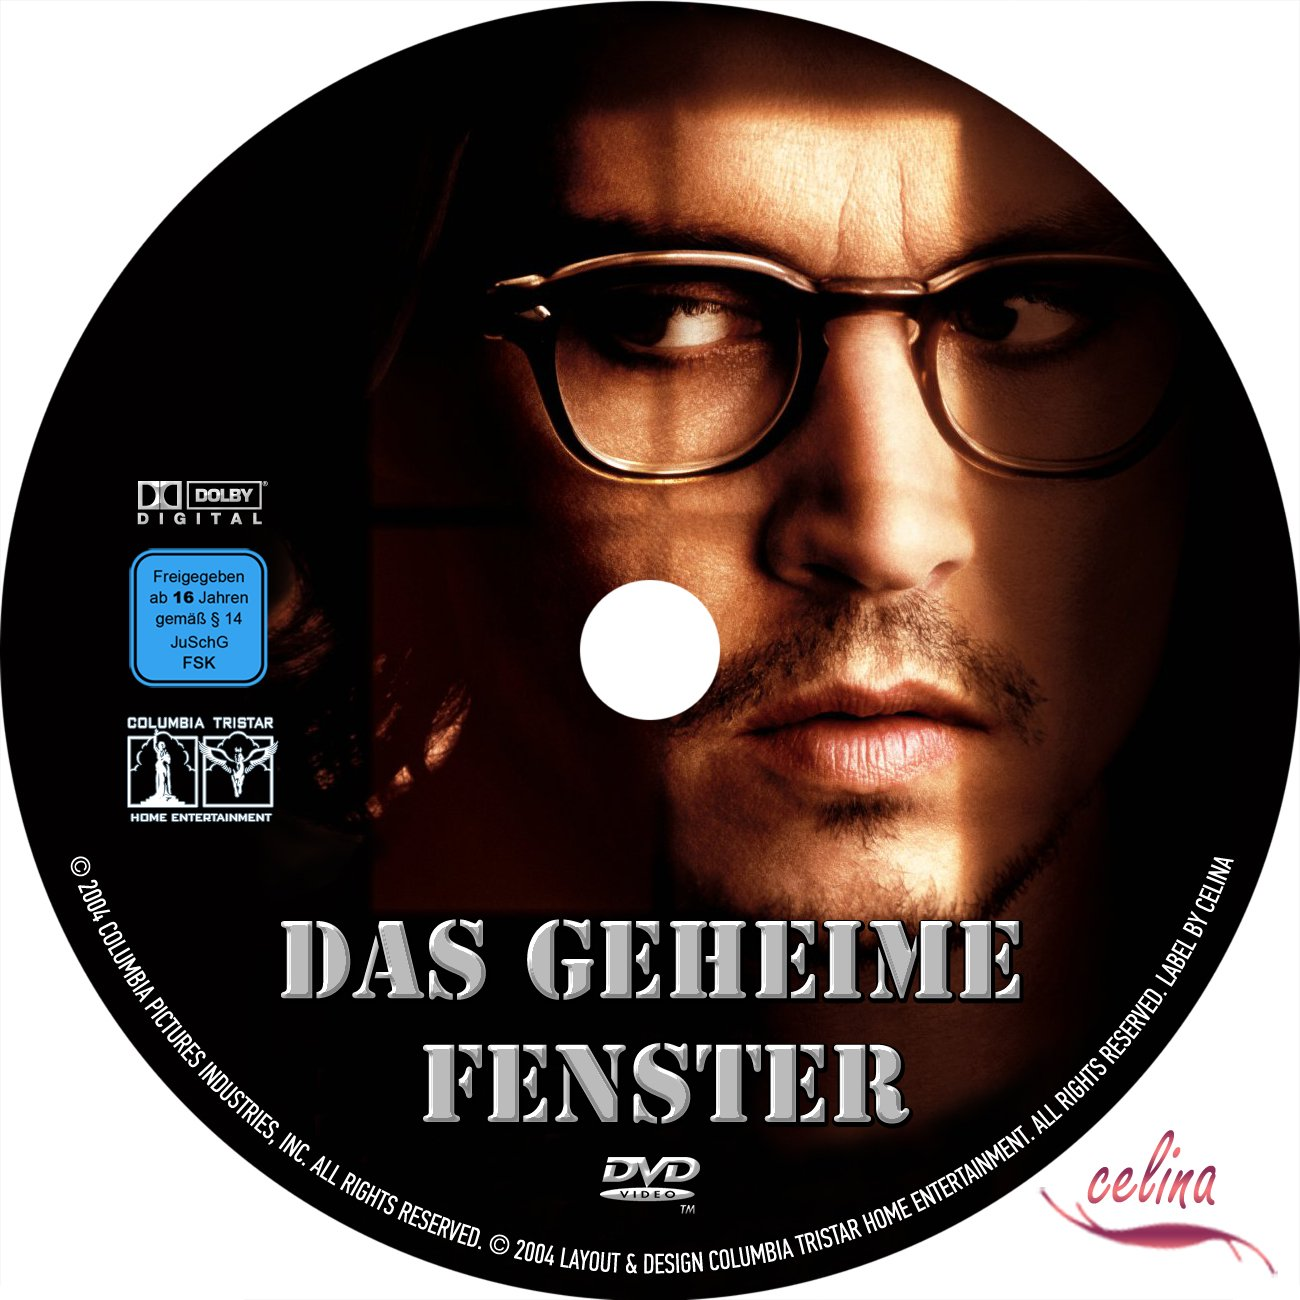 Das Geheime Fenster German Dvd Covers